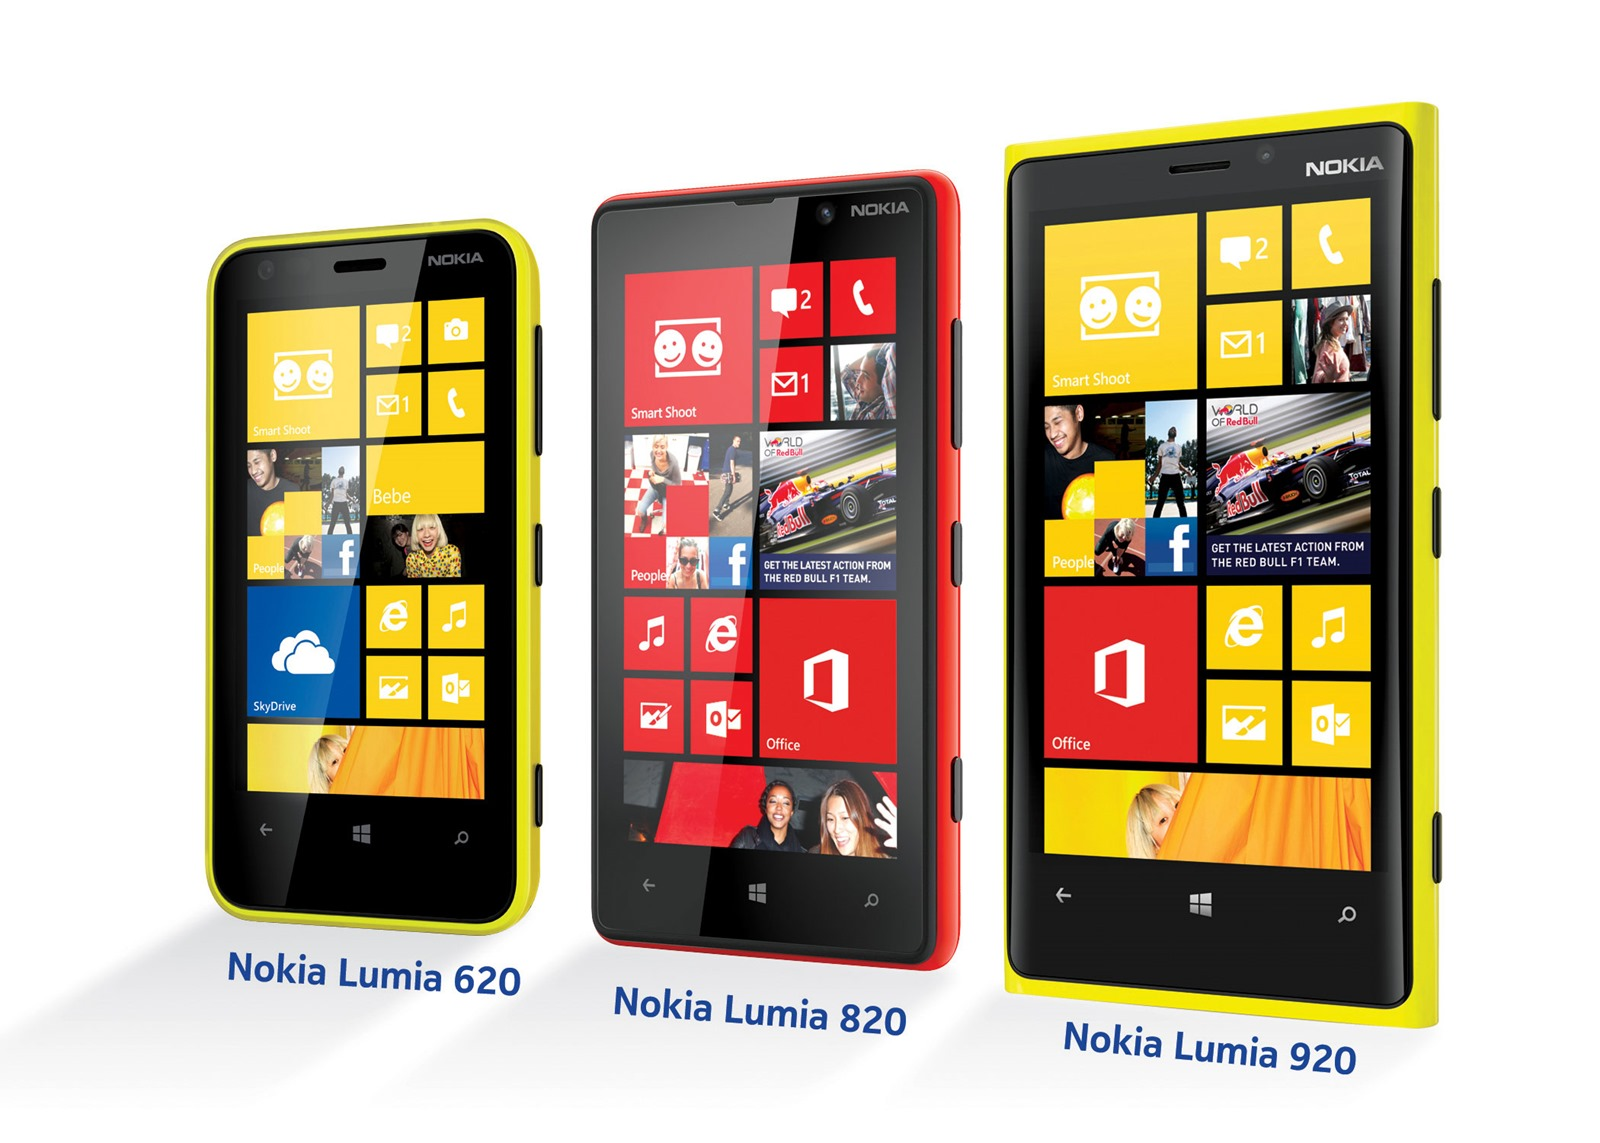 nokia lumia 920 latest wallpaper information about all. Black Bedroom Furniture Sets. Home Design Ideas